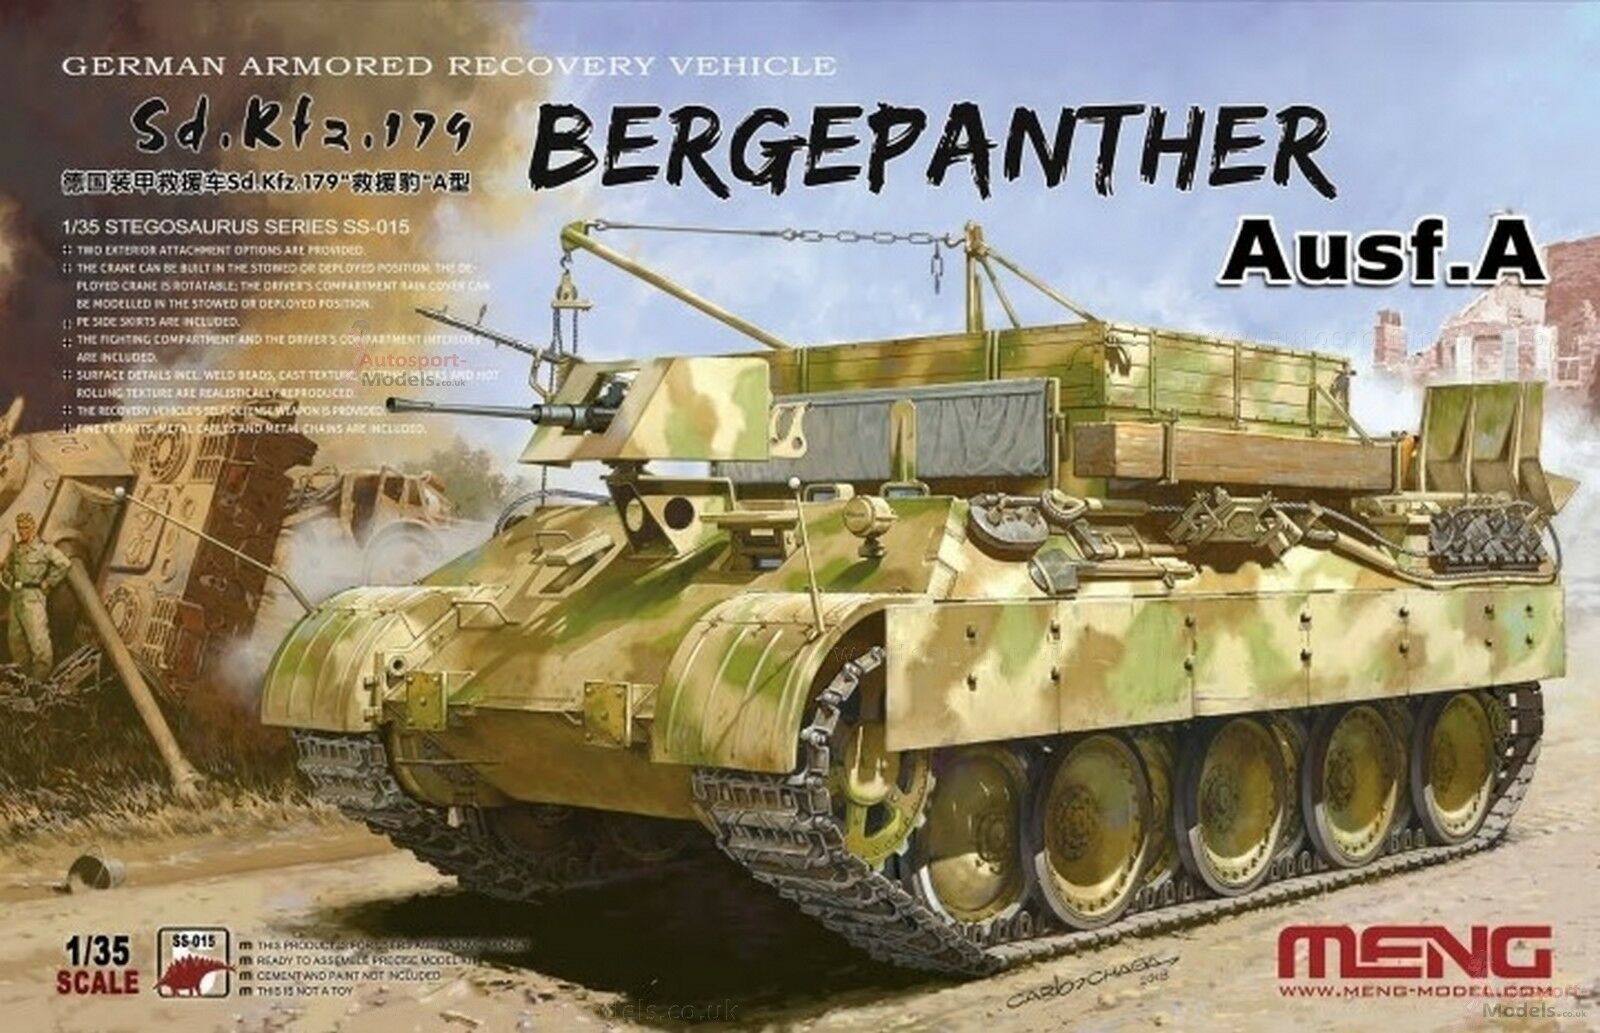 1 35 WWII German Sd.Kfz.179 Bergepanther Ausf.A Recovery Tank model kit by MENG